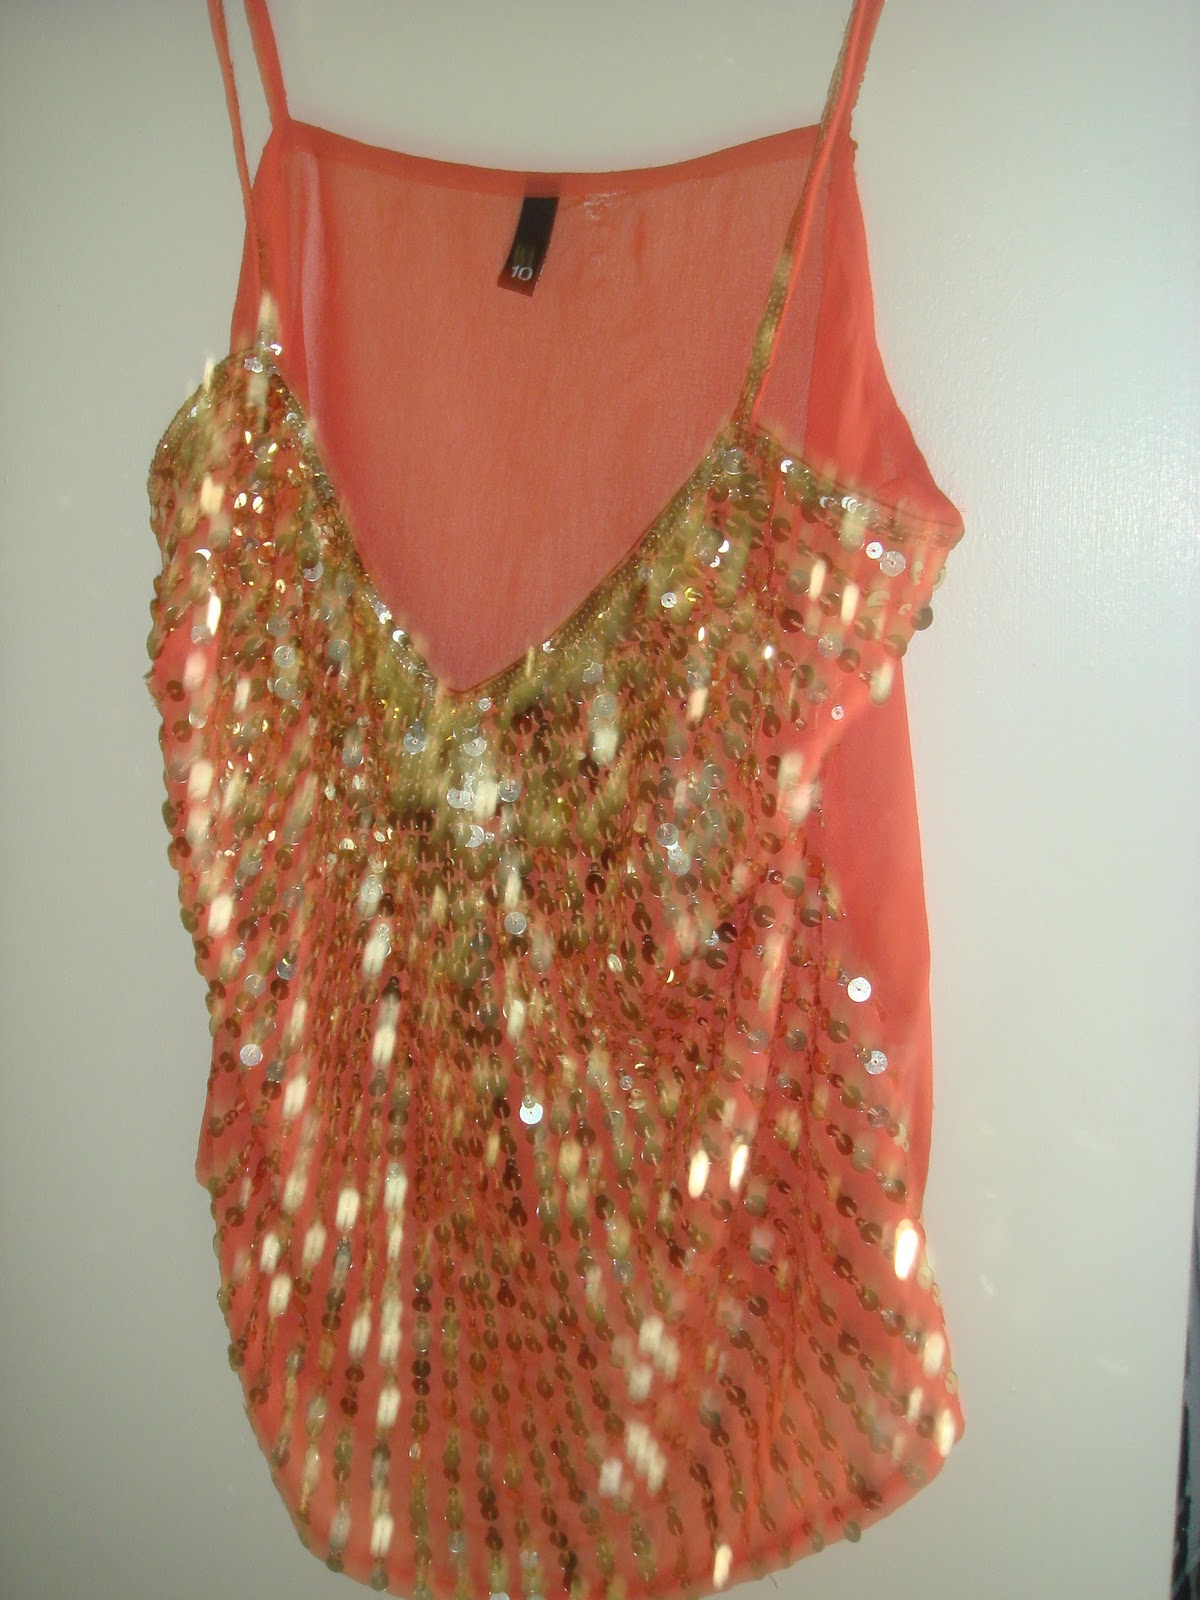 Shop rightupyouraly h amp m peach w gold sequin top 15 sold